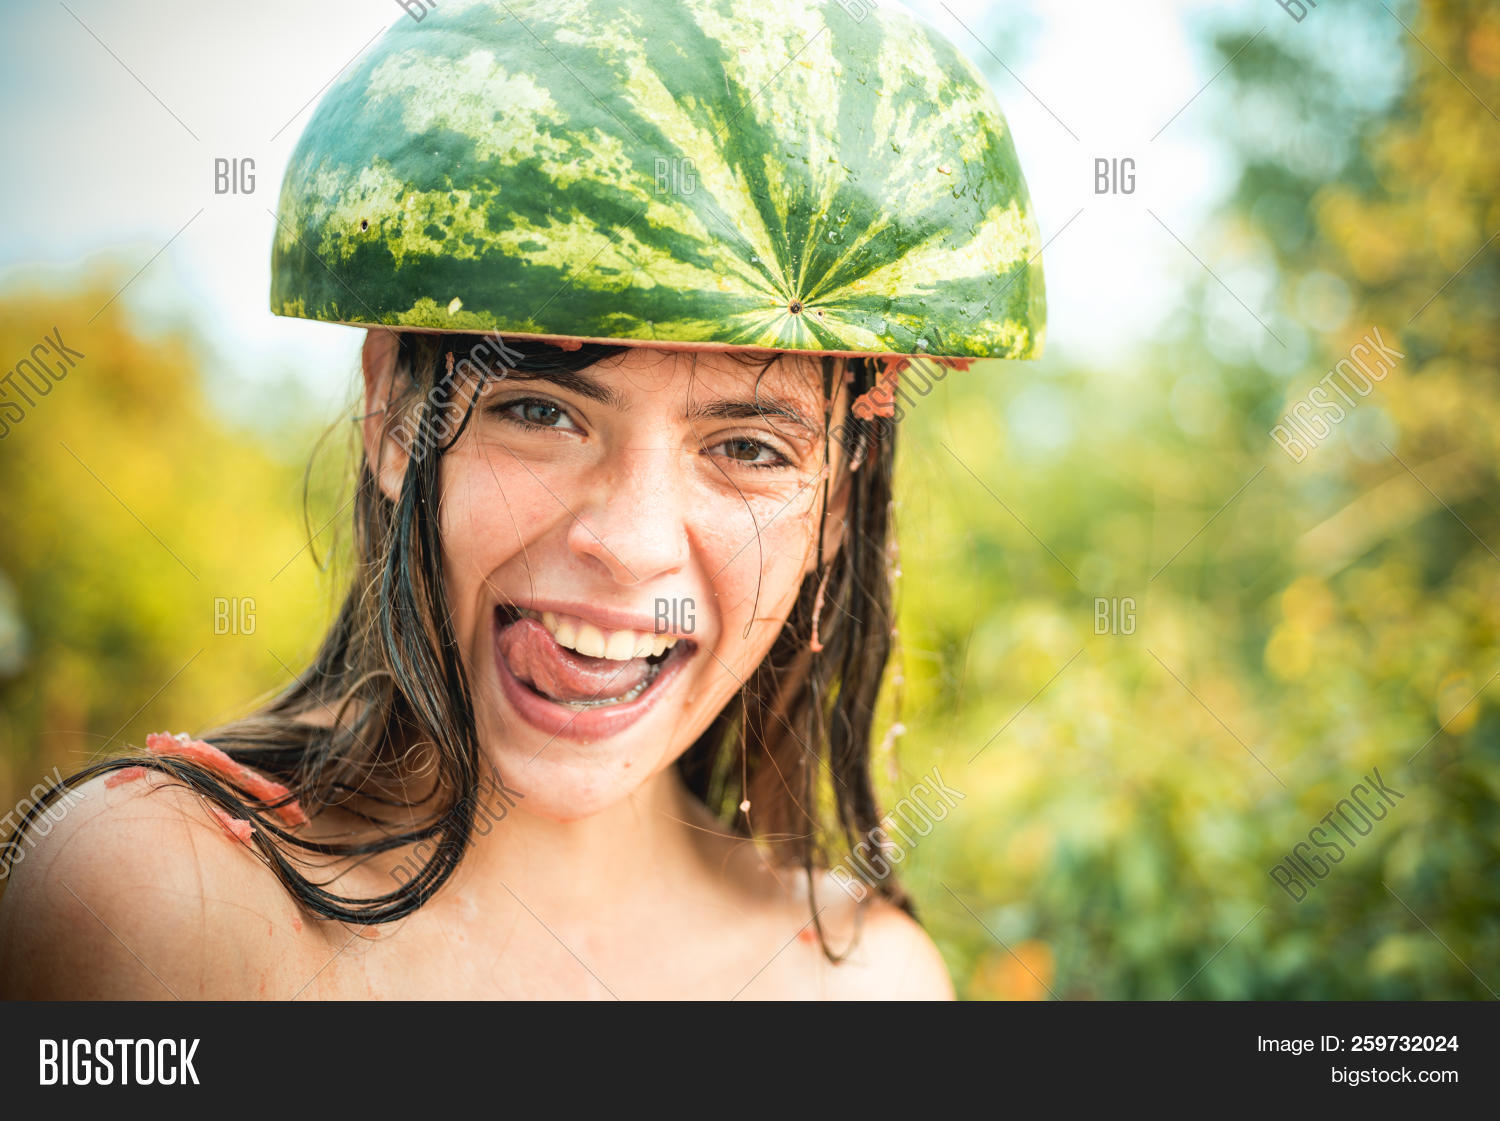 Game,attractive,beauty,bye,carefree,child,closeup,copy,crazy,croaking,decor,driver,emotions,expression,face,female,friends,funny,girl,good,green,happy,hello,helmet,joy,kitchen,leaf,life,like,model,people,portrait,pretty,season,smile,smiling,space,summer,teenager,time,trend,watermelon,woman,young